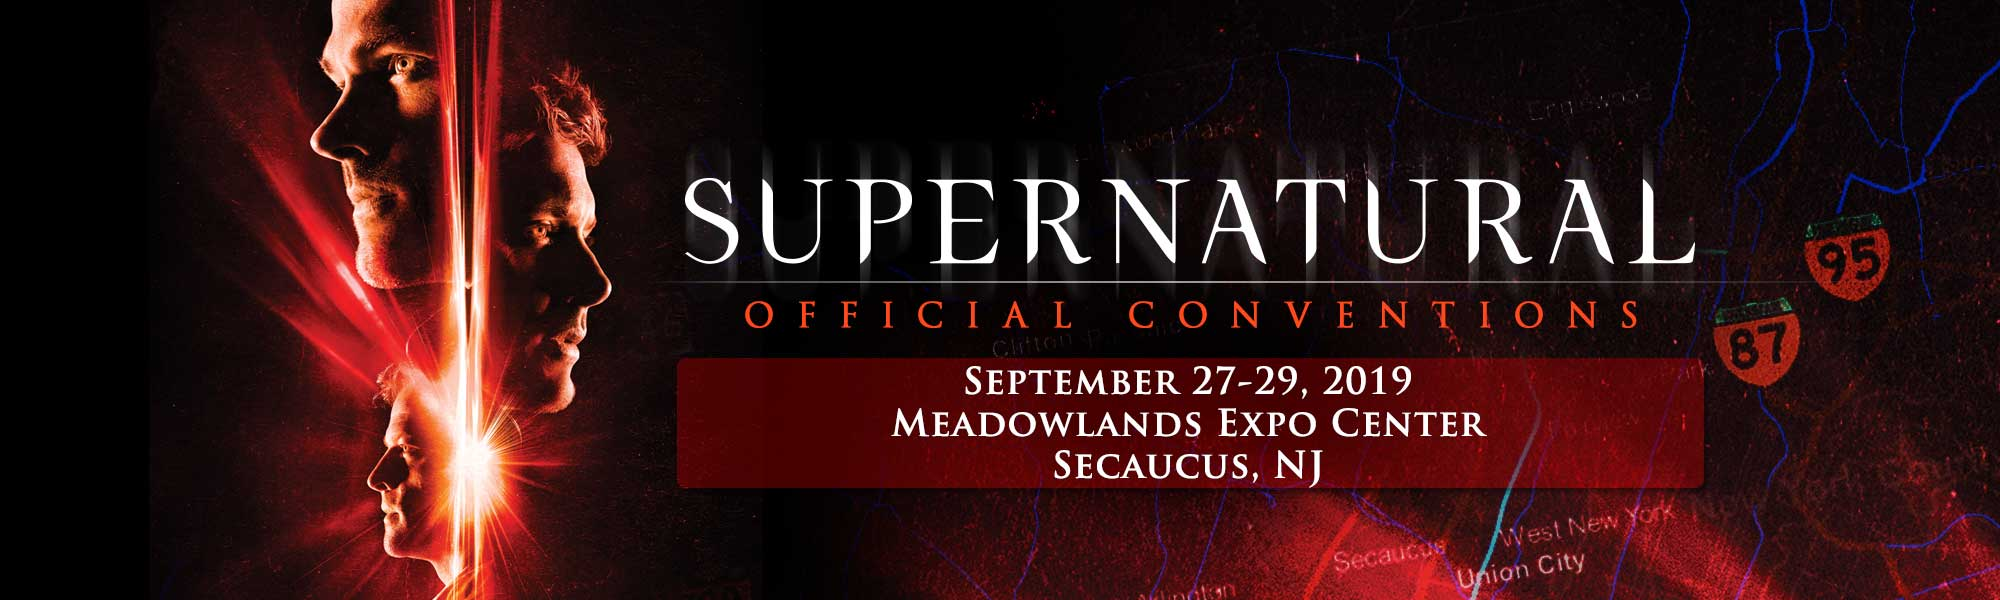 Image result for Supernatural Convention Secaucus NJ September 27-29